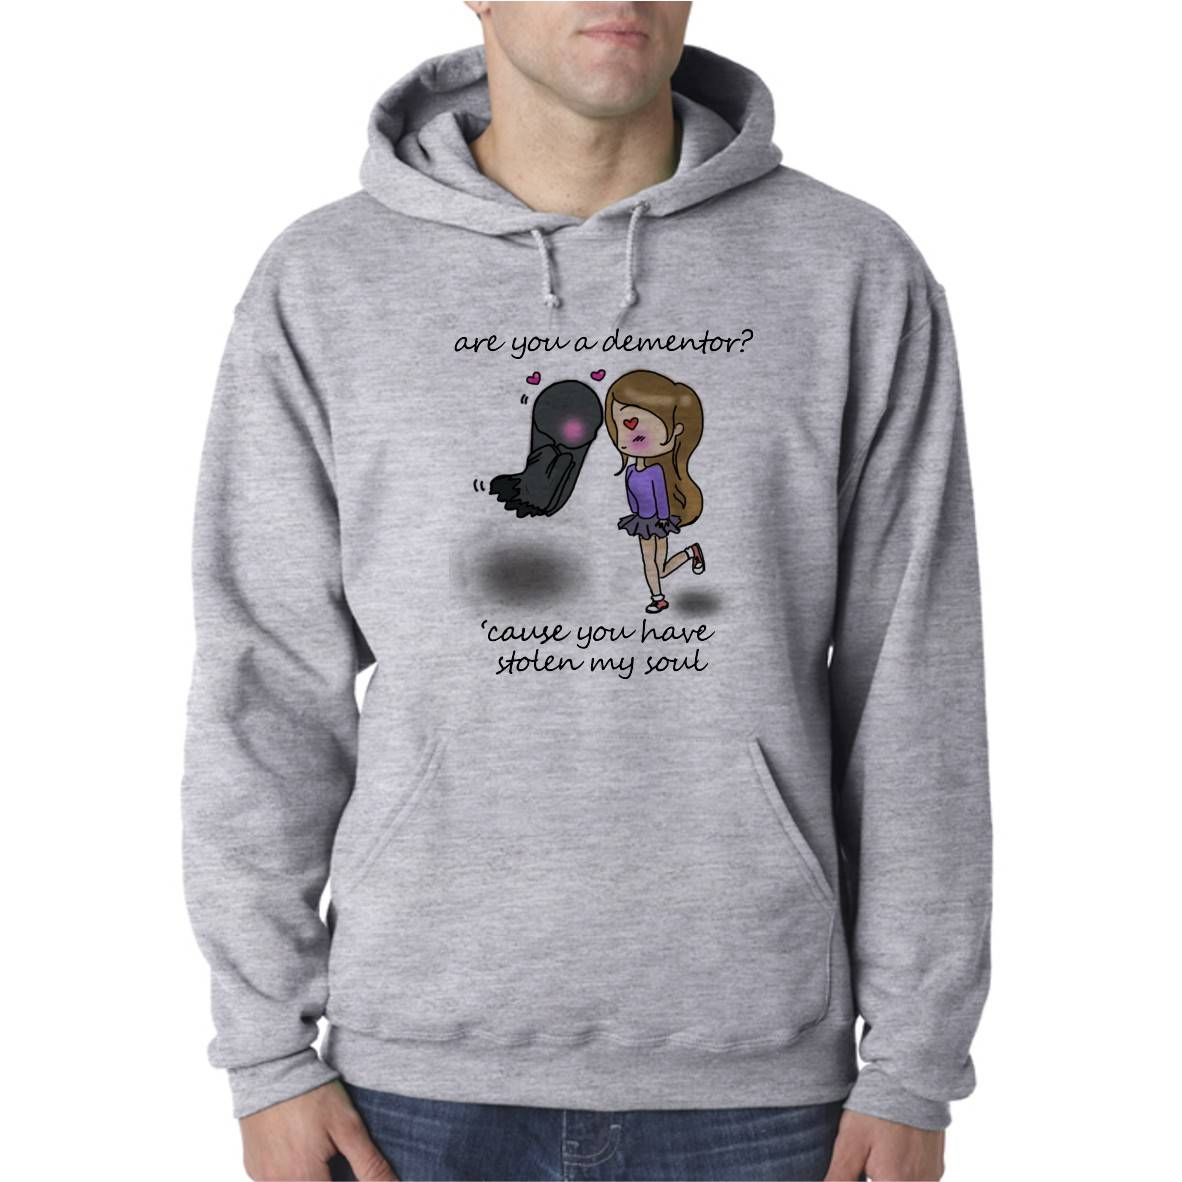 DEMENTOR IN LOVE UNISEX HOODED